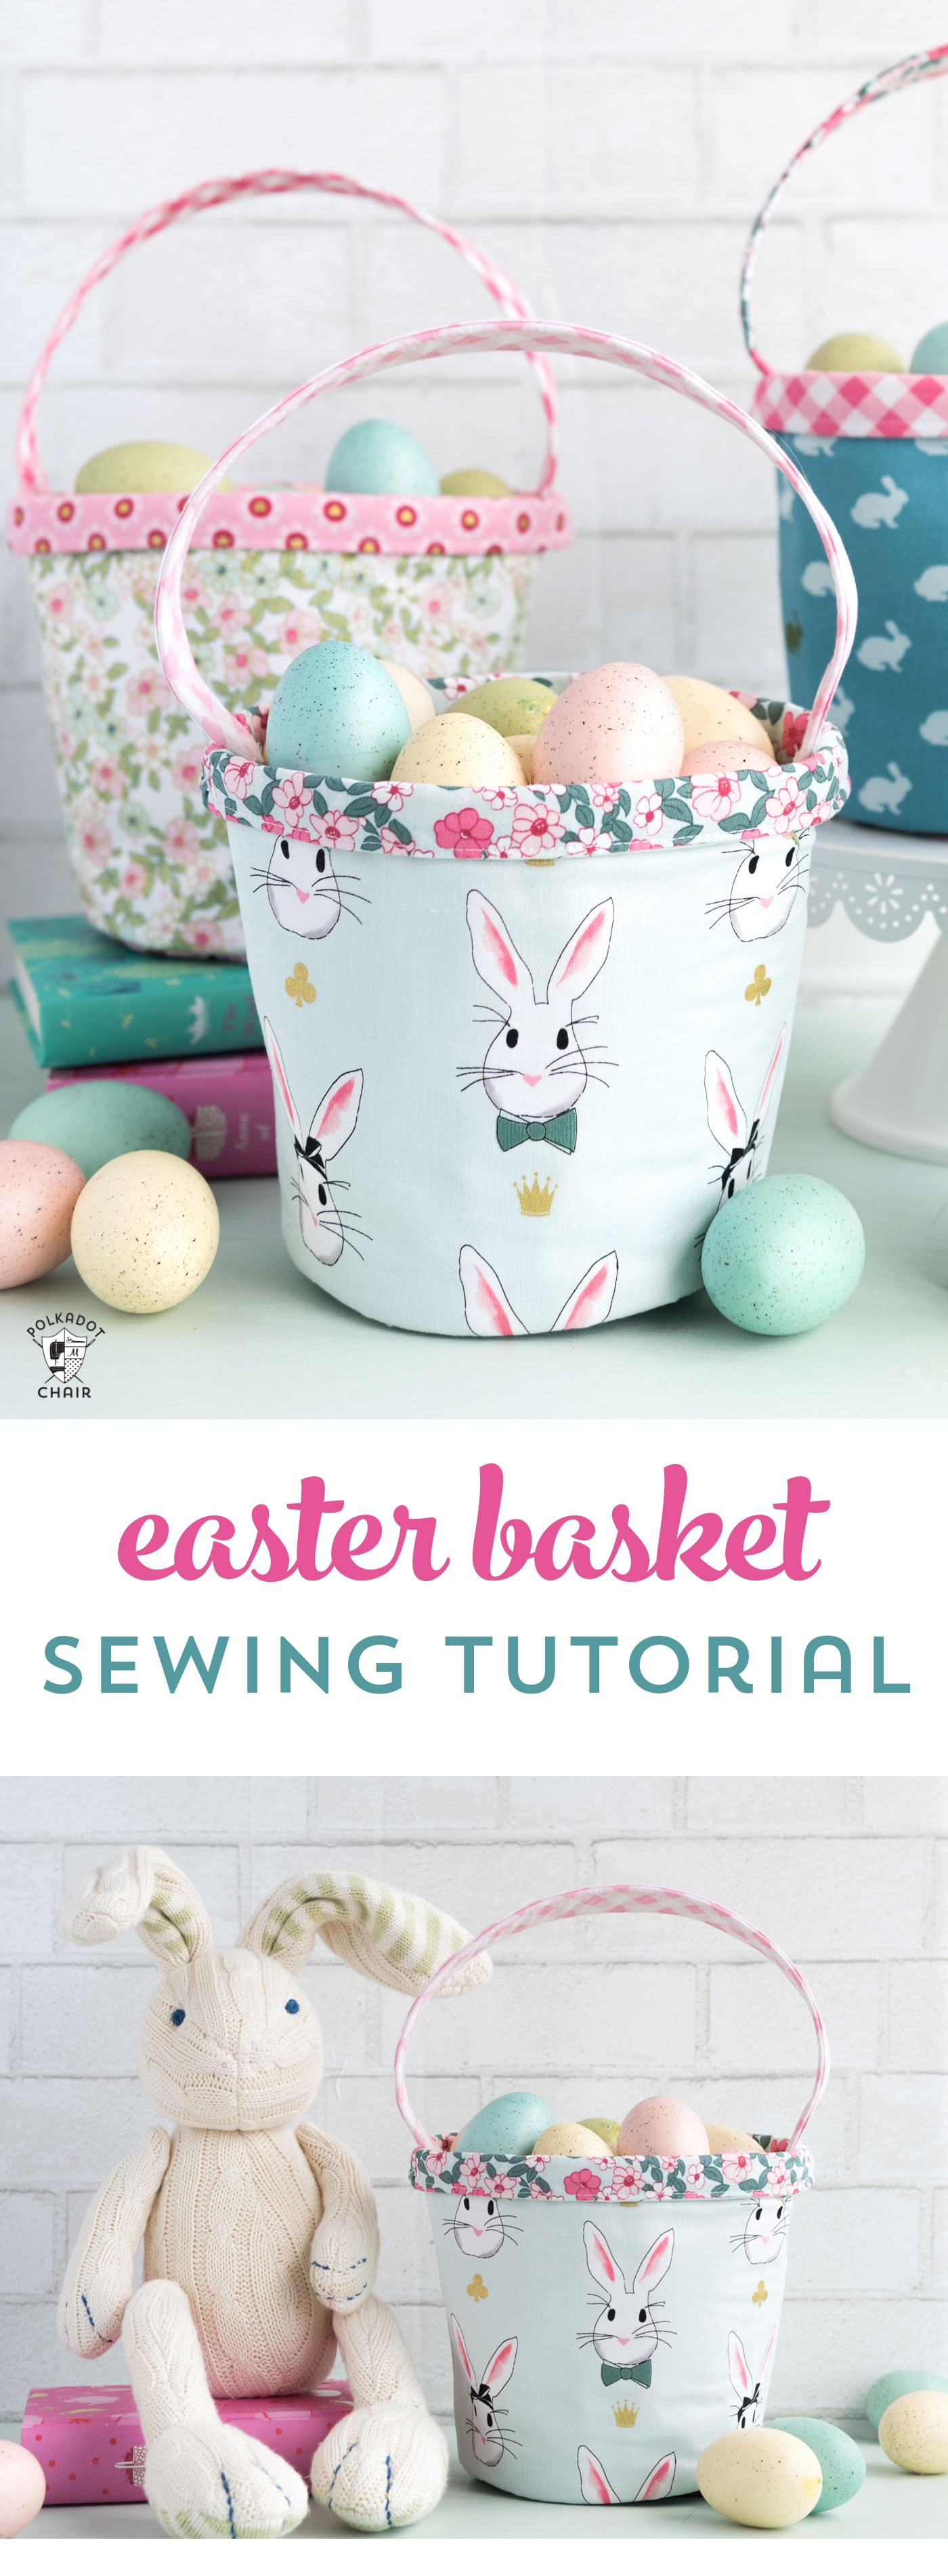 Free Easter Basket sewing tutorial - a cute little fabric basket perfect for Spring!